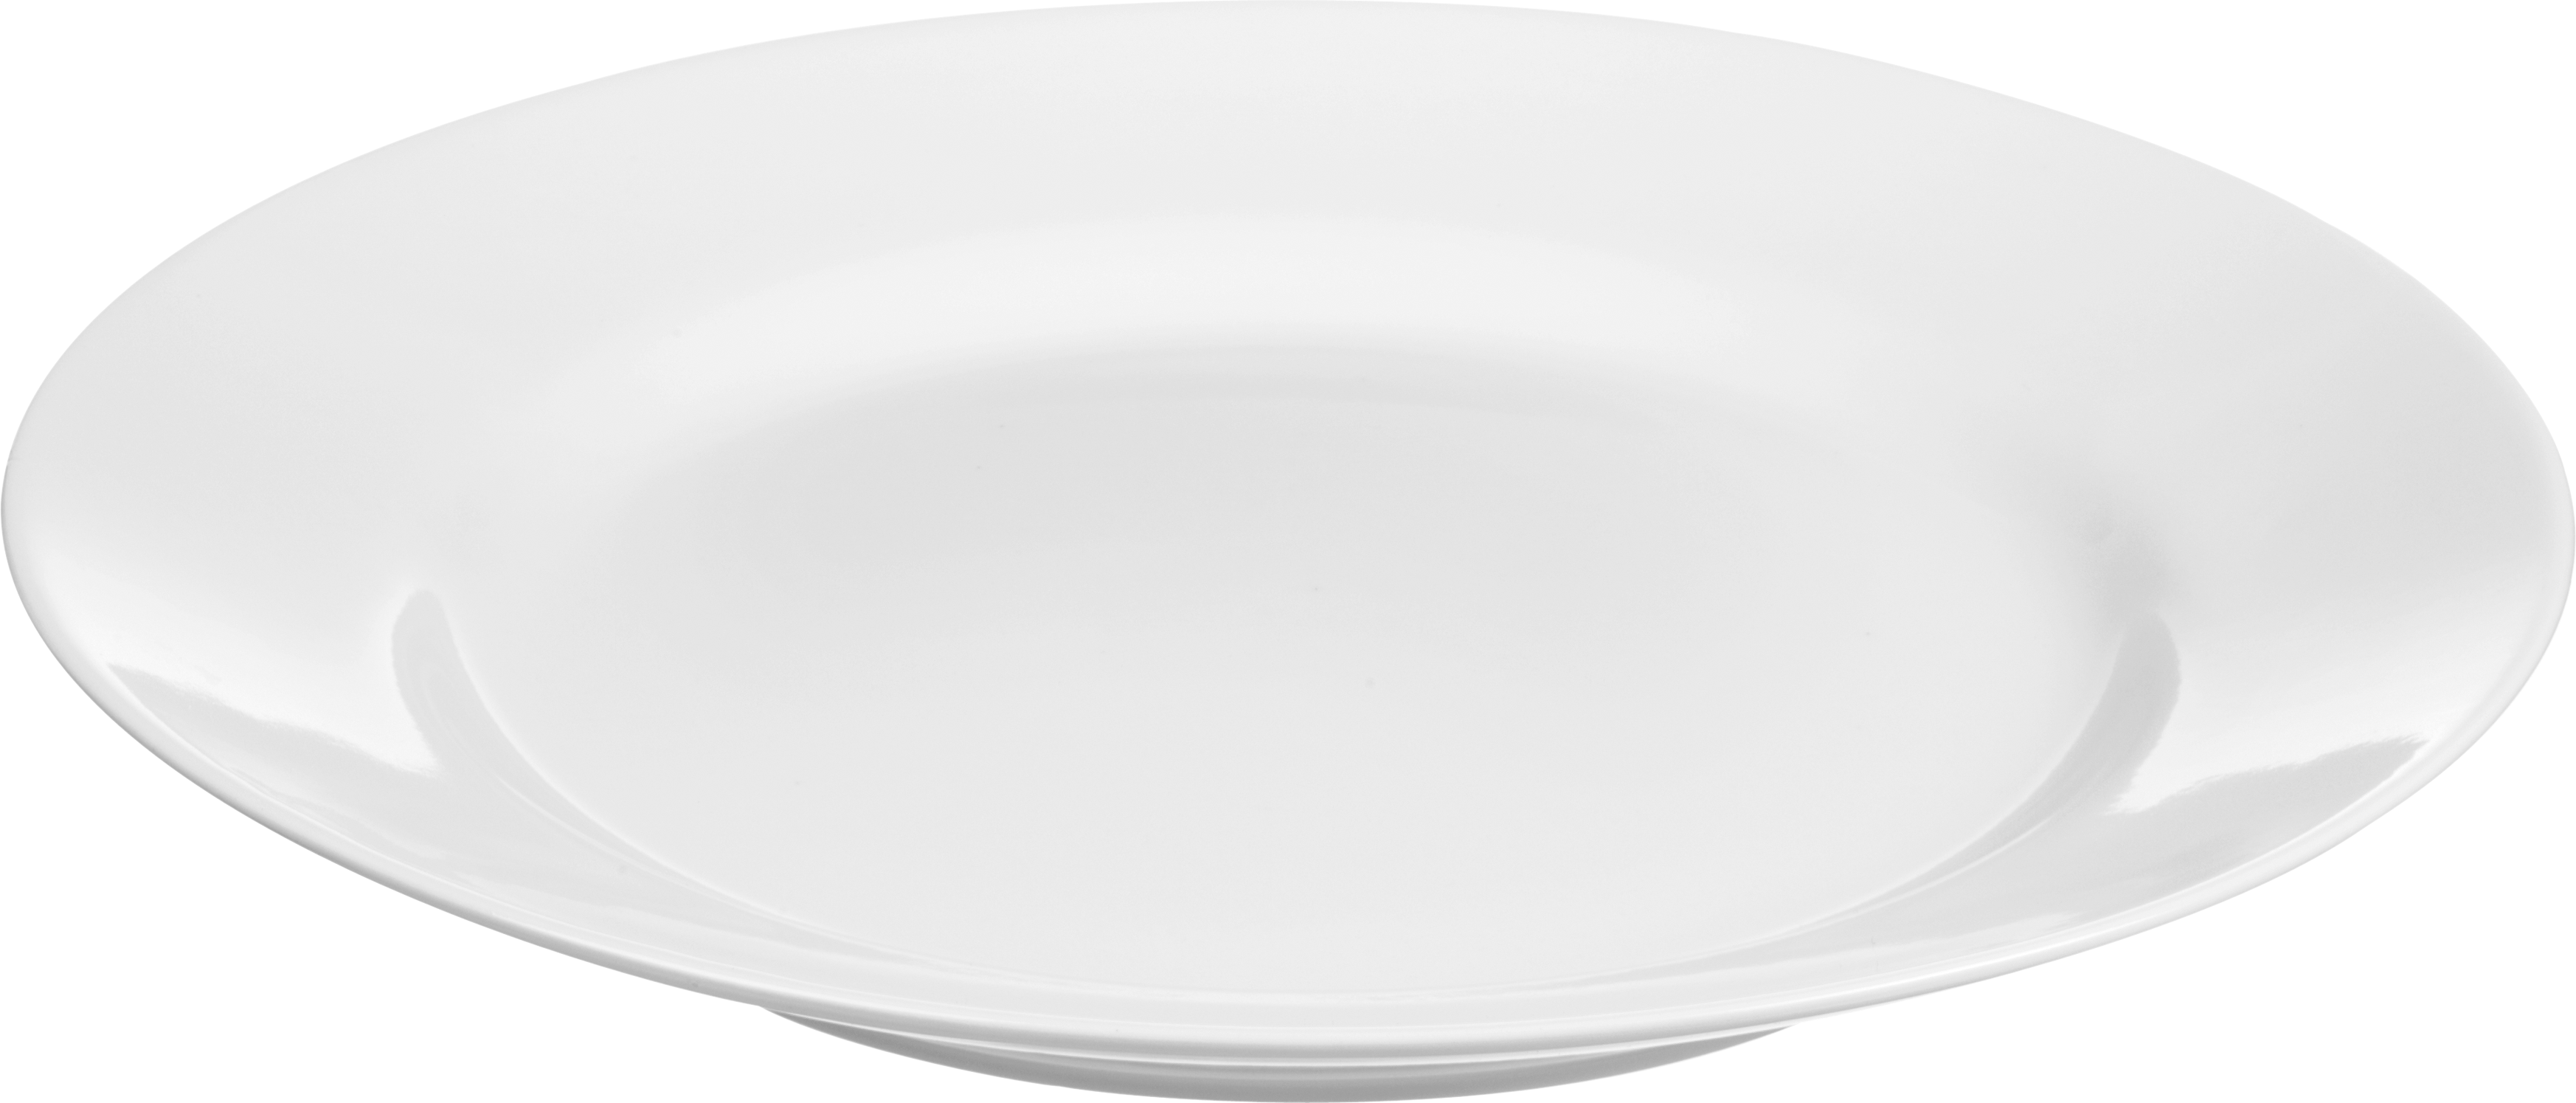 White Plate Png - Pin by Muhammad Abdelhamid on مجموعات ضمنية   Plate png, White ...